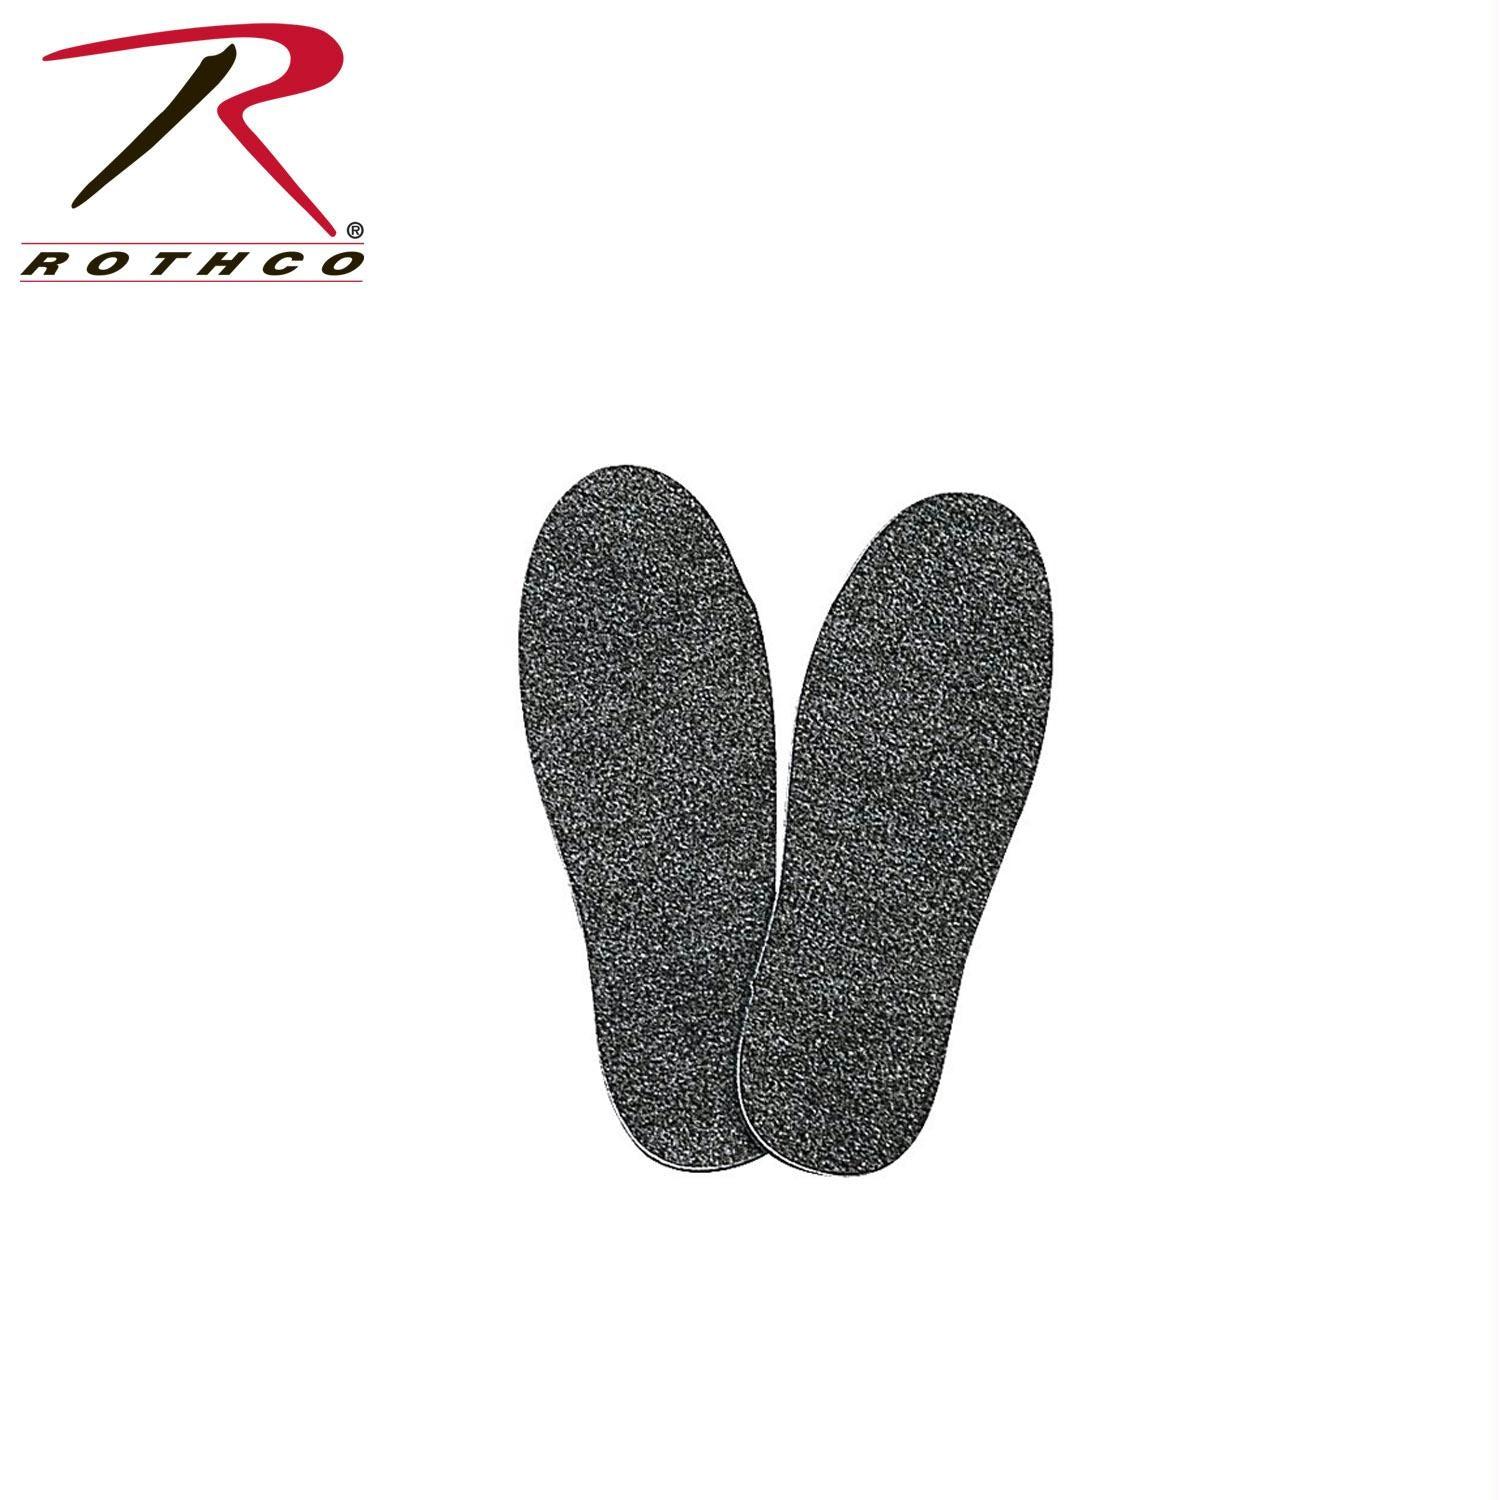 Rothco Cold Weather Heavyweight Insoles - 13